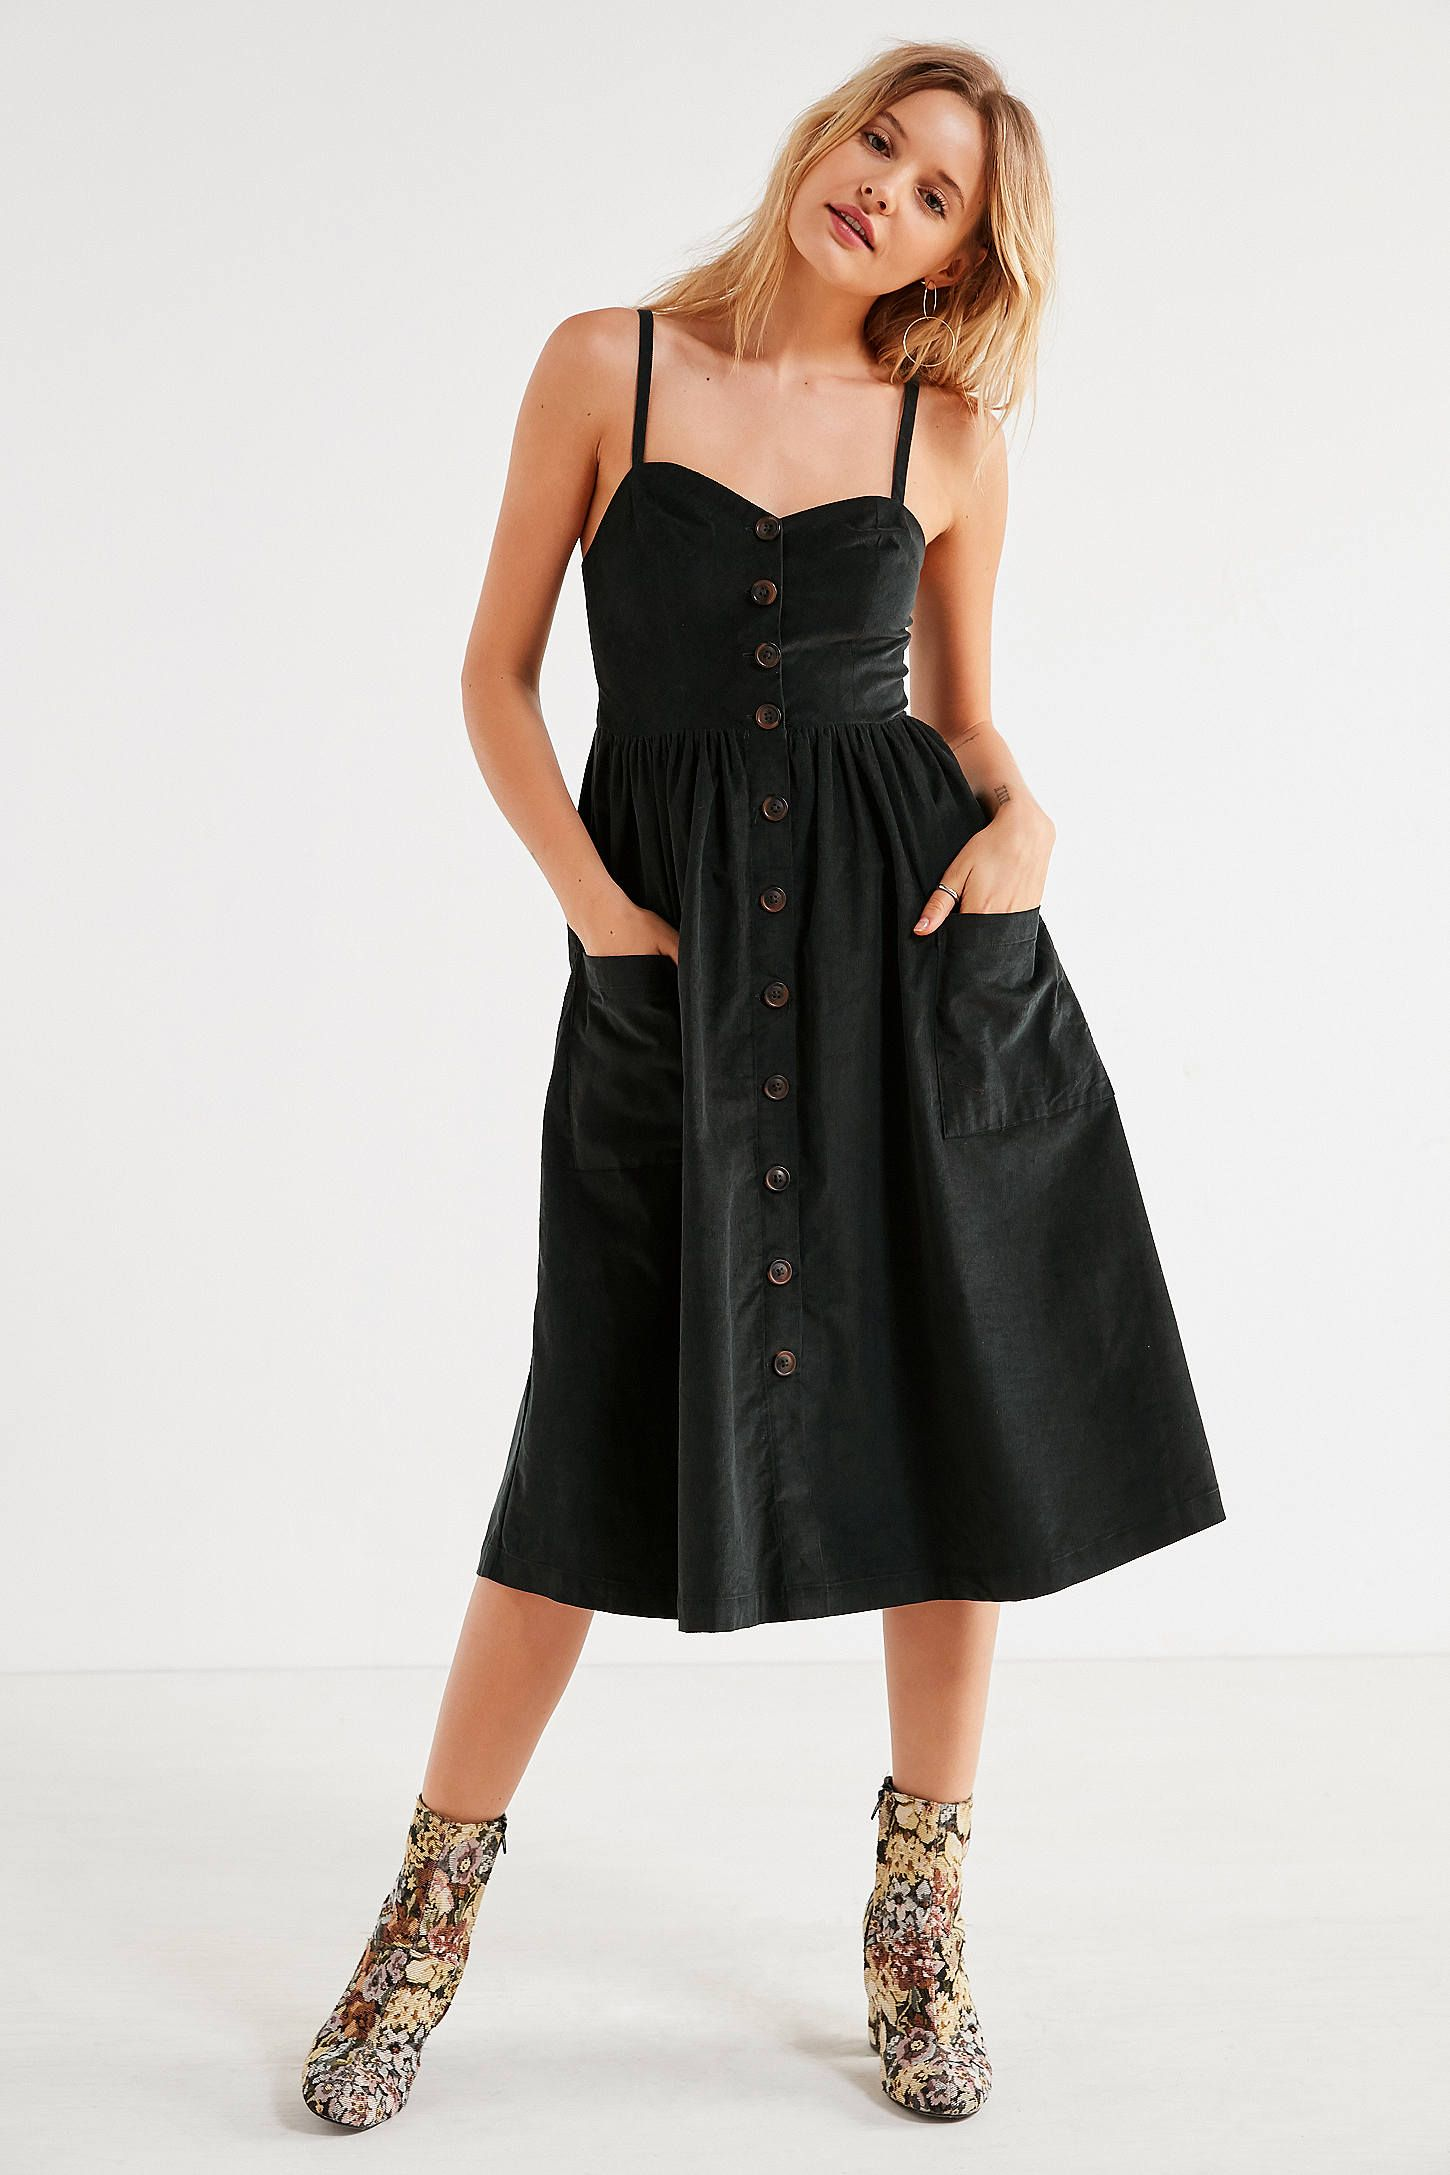 2a73817775 Shop UO Emilia Corduroy Button-Down Midi Dress at Urban Outfitters today.  We carry all the latest styles